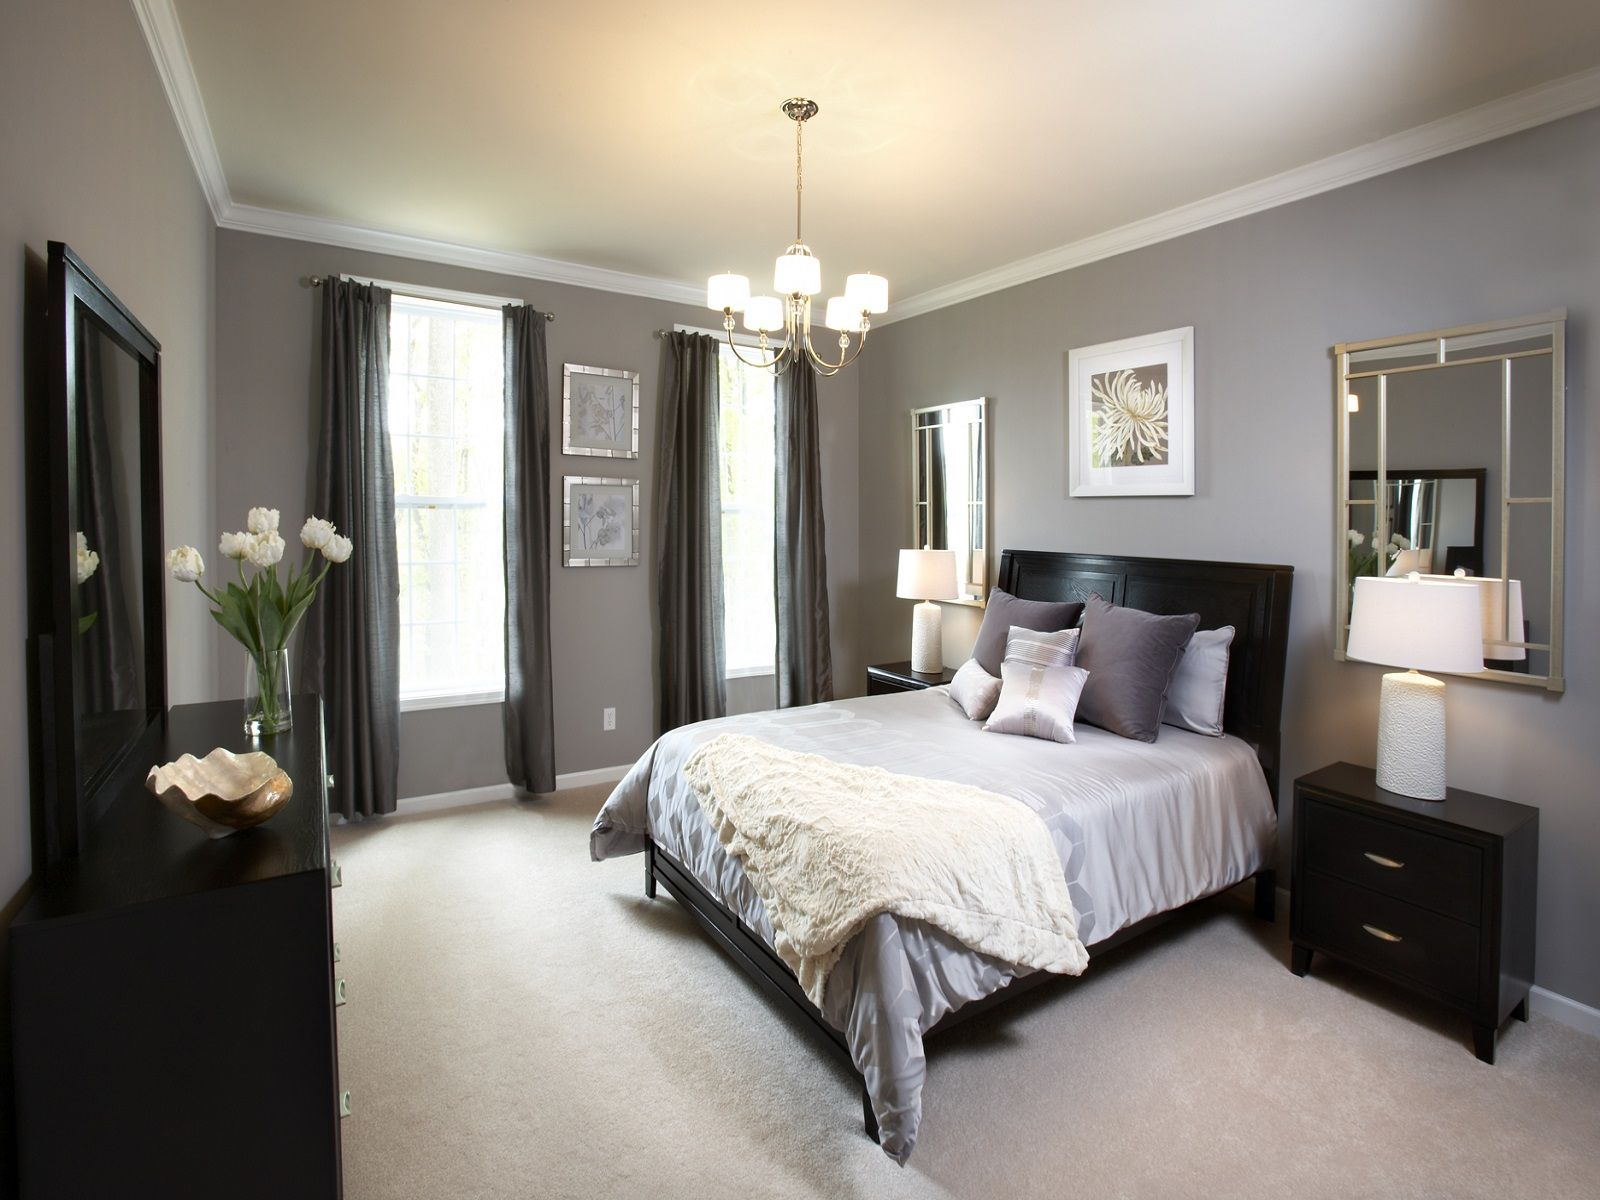 Design Light Grey Room bedroompaint color ideas for master bedroom buffet with mirror pendant